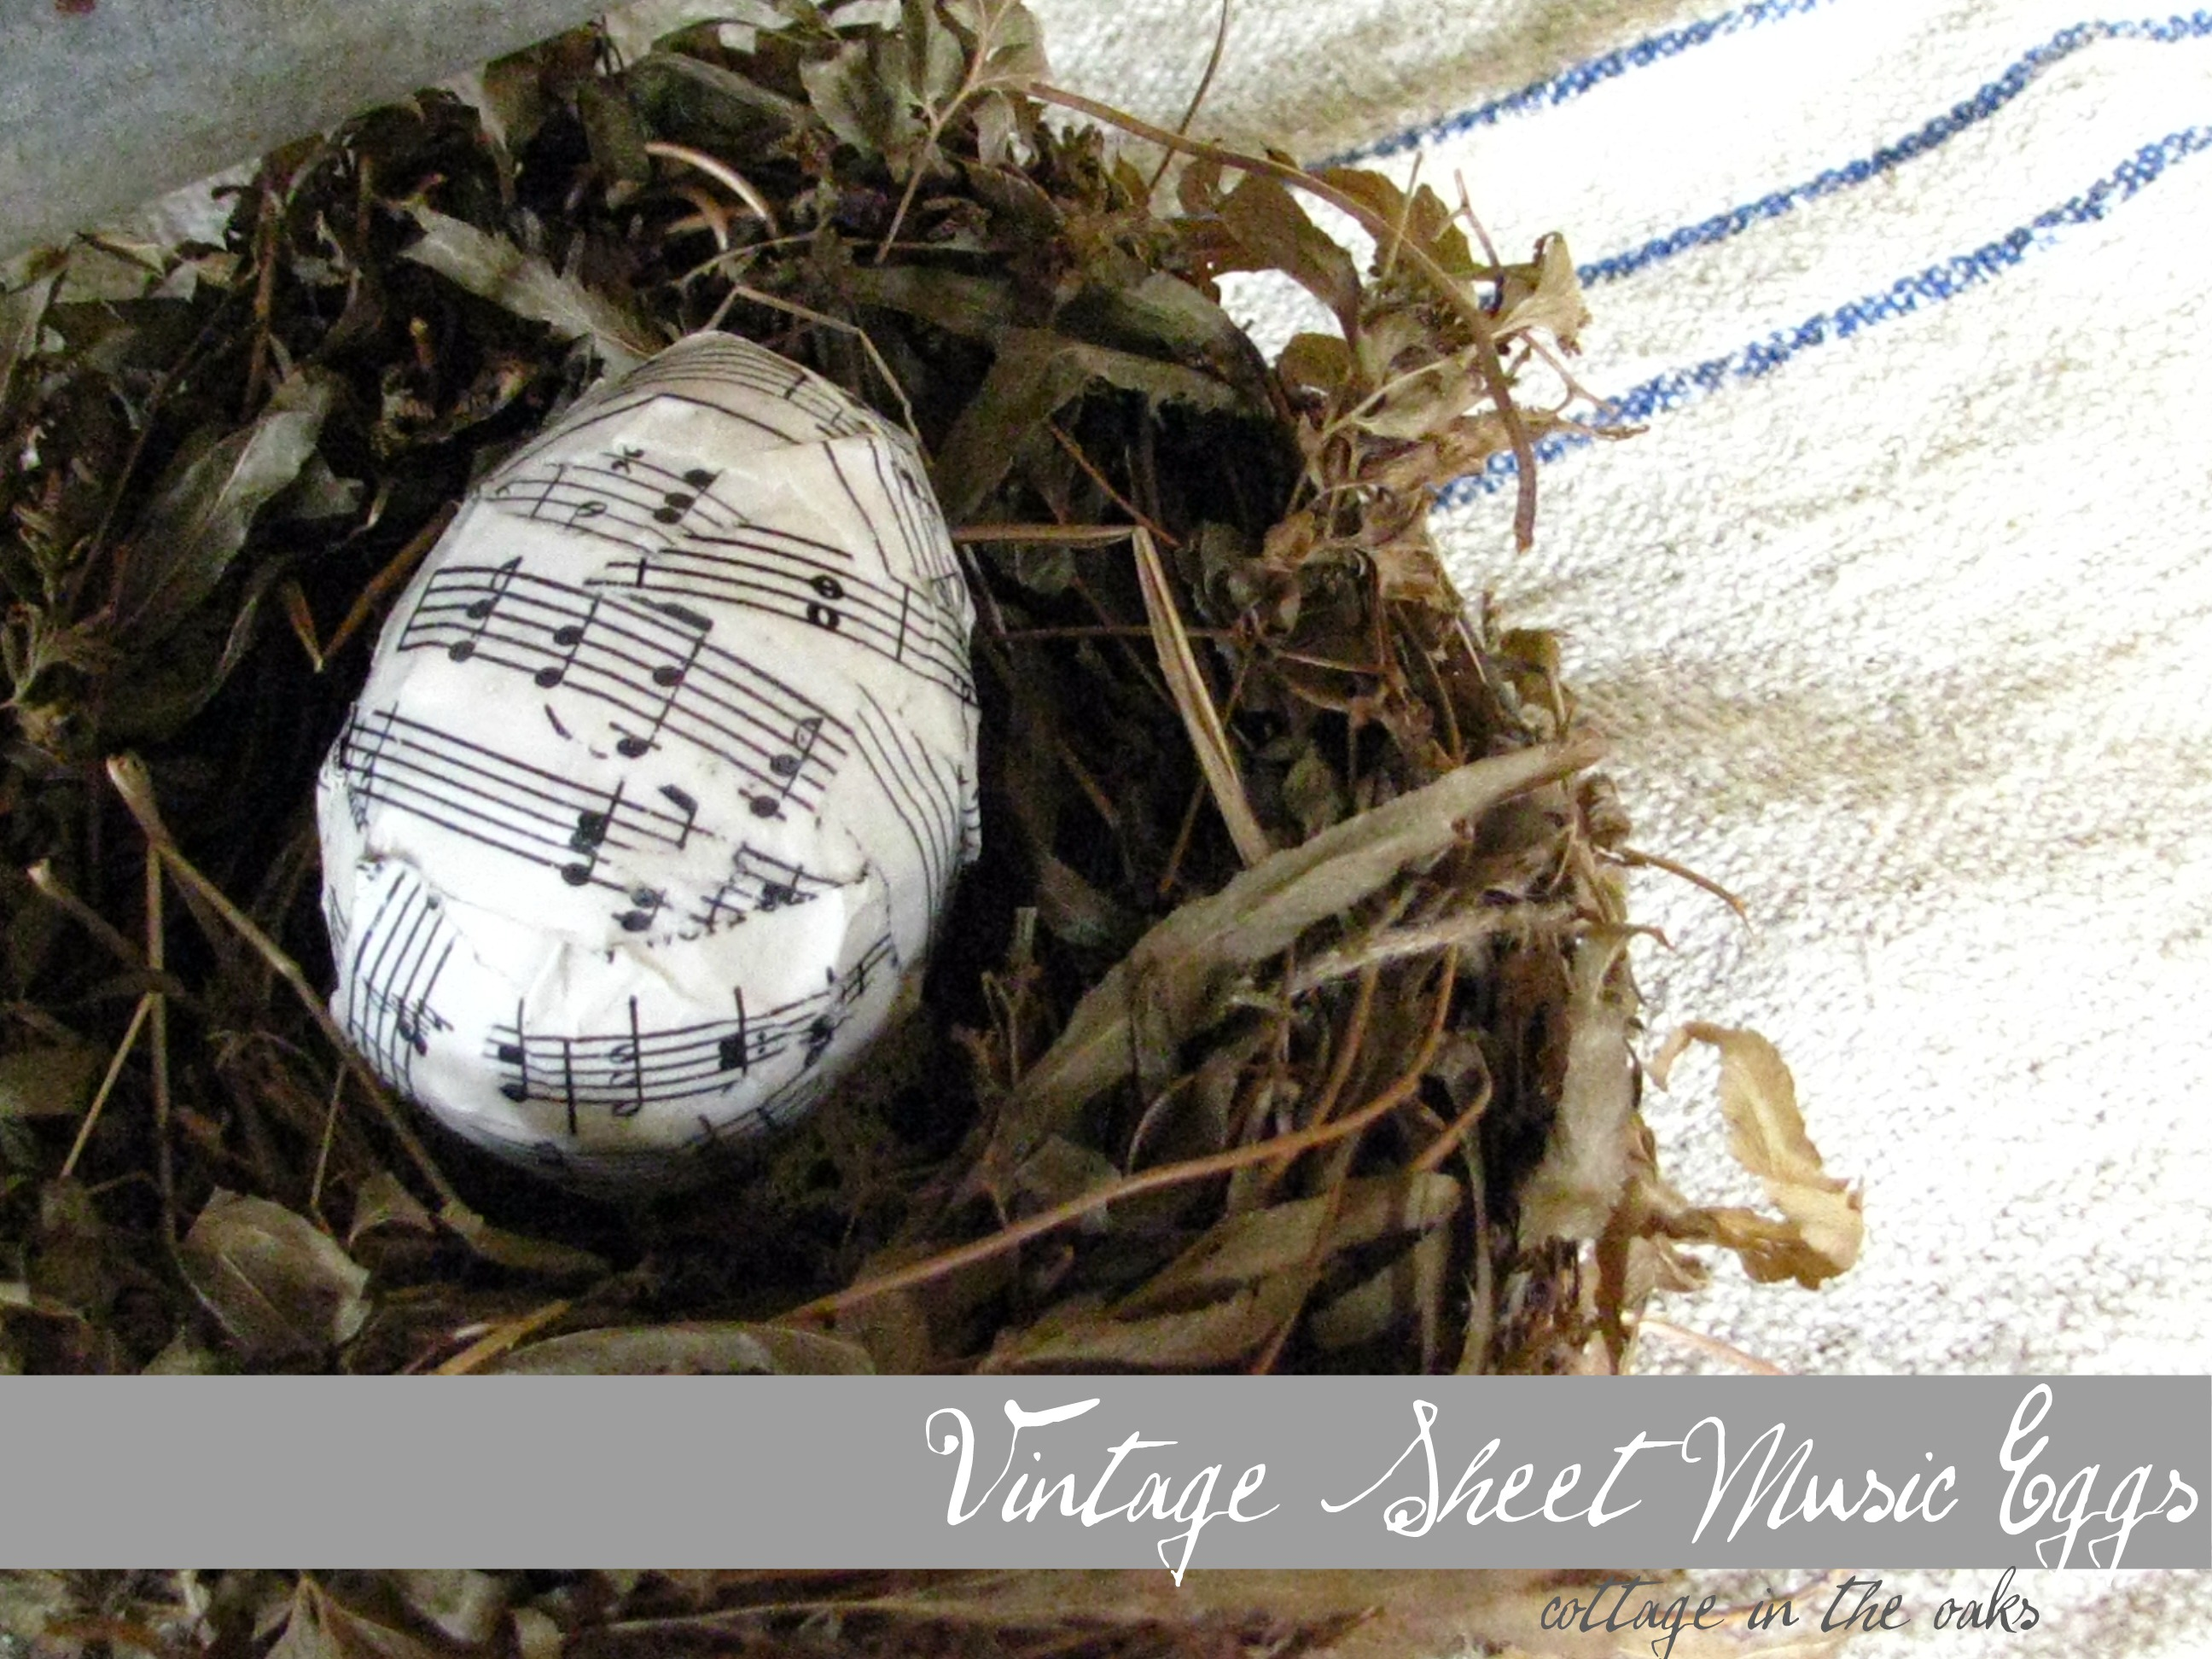 Vintage Sheet Music Eggs - Cottage in the Oaks